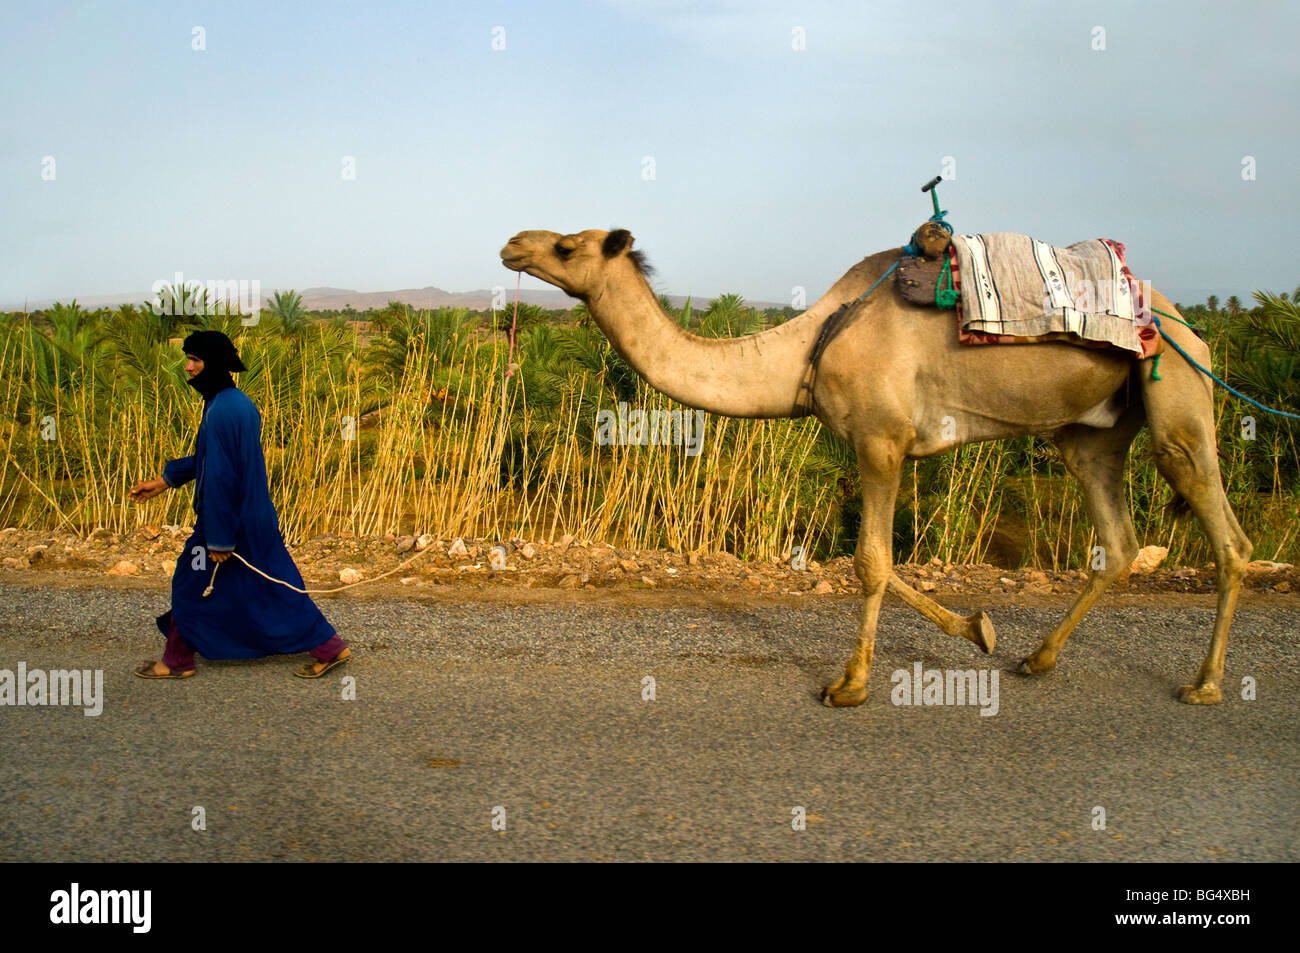 Berber Man leading camel along a road in Morocco, North Africa - Stock Image